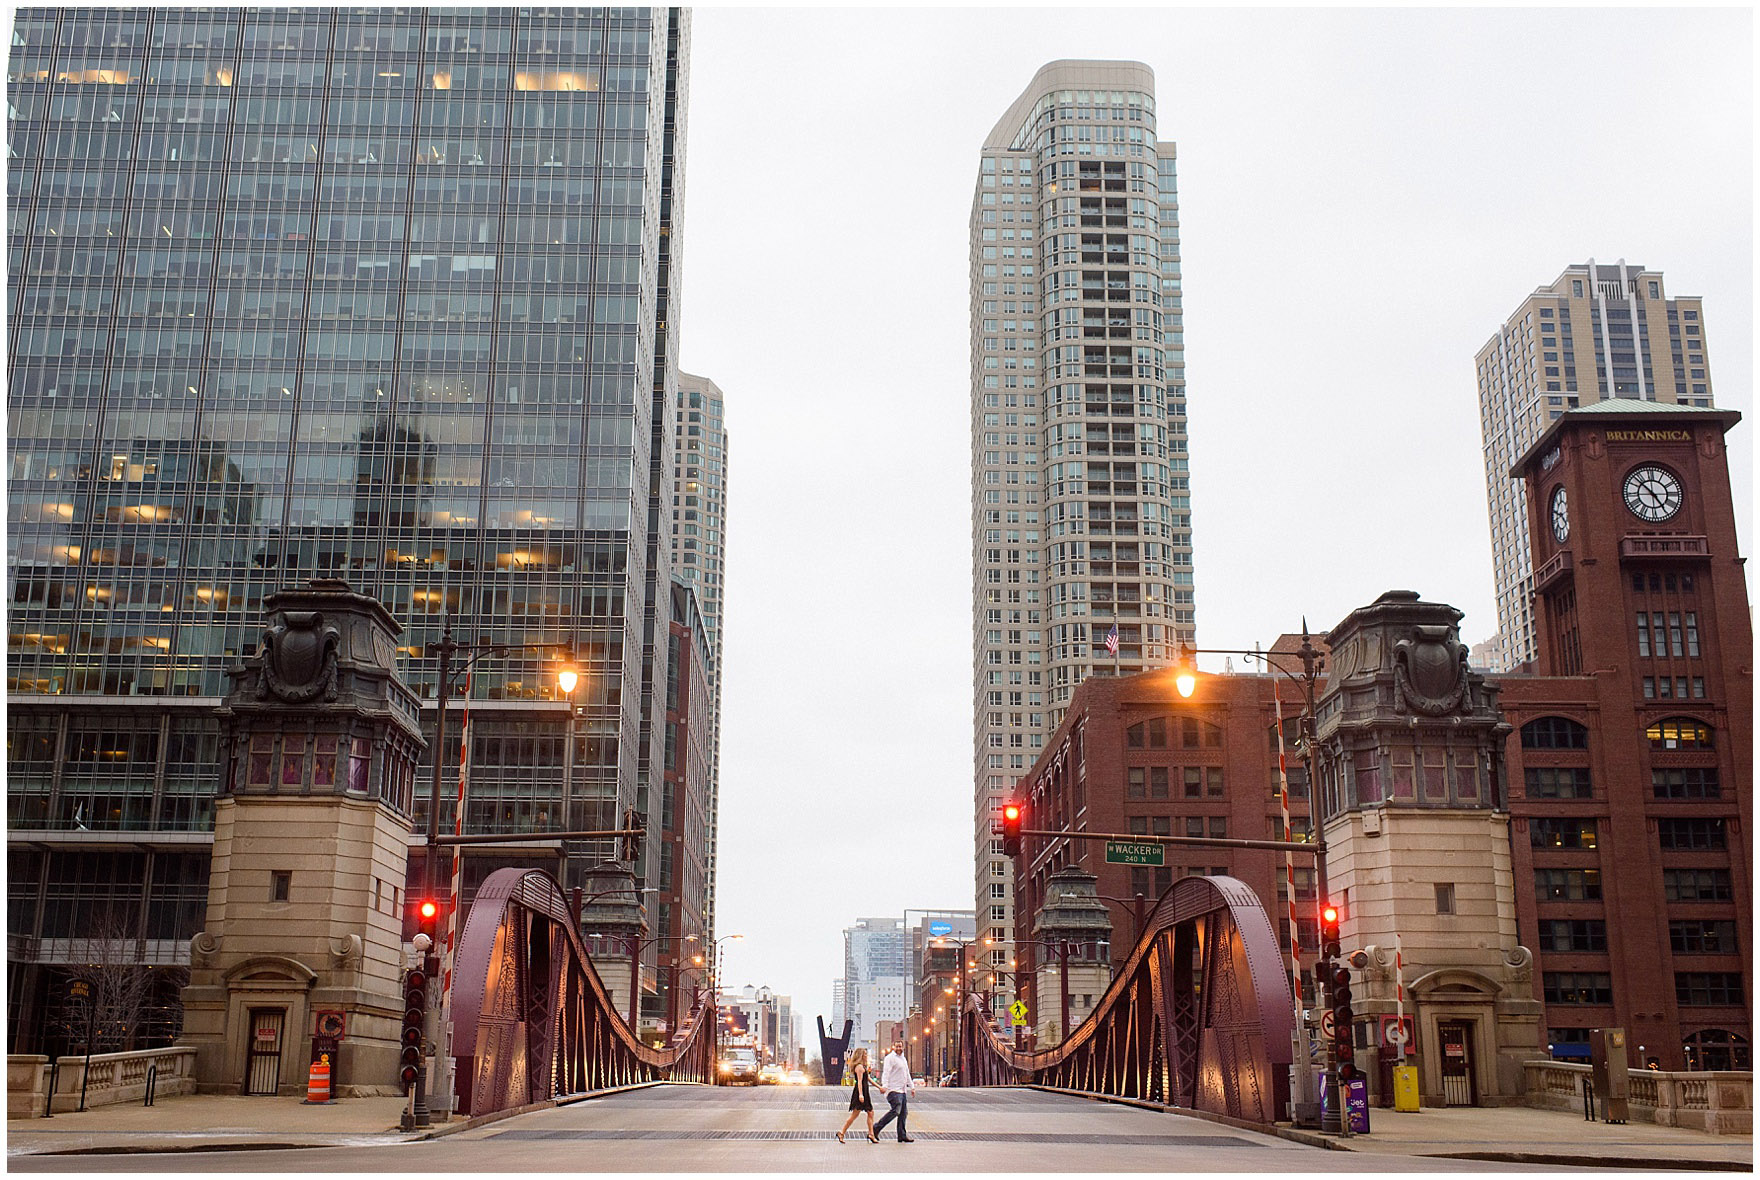 A couple walks through the intersection at the LaSalle Street bridge during a downtown Chicago city engagement photography session.